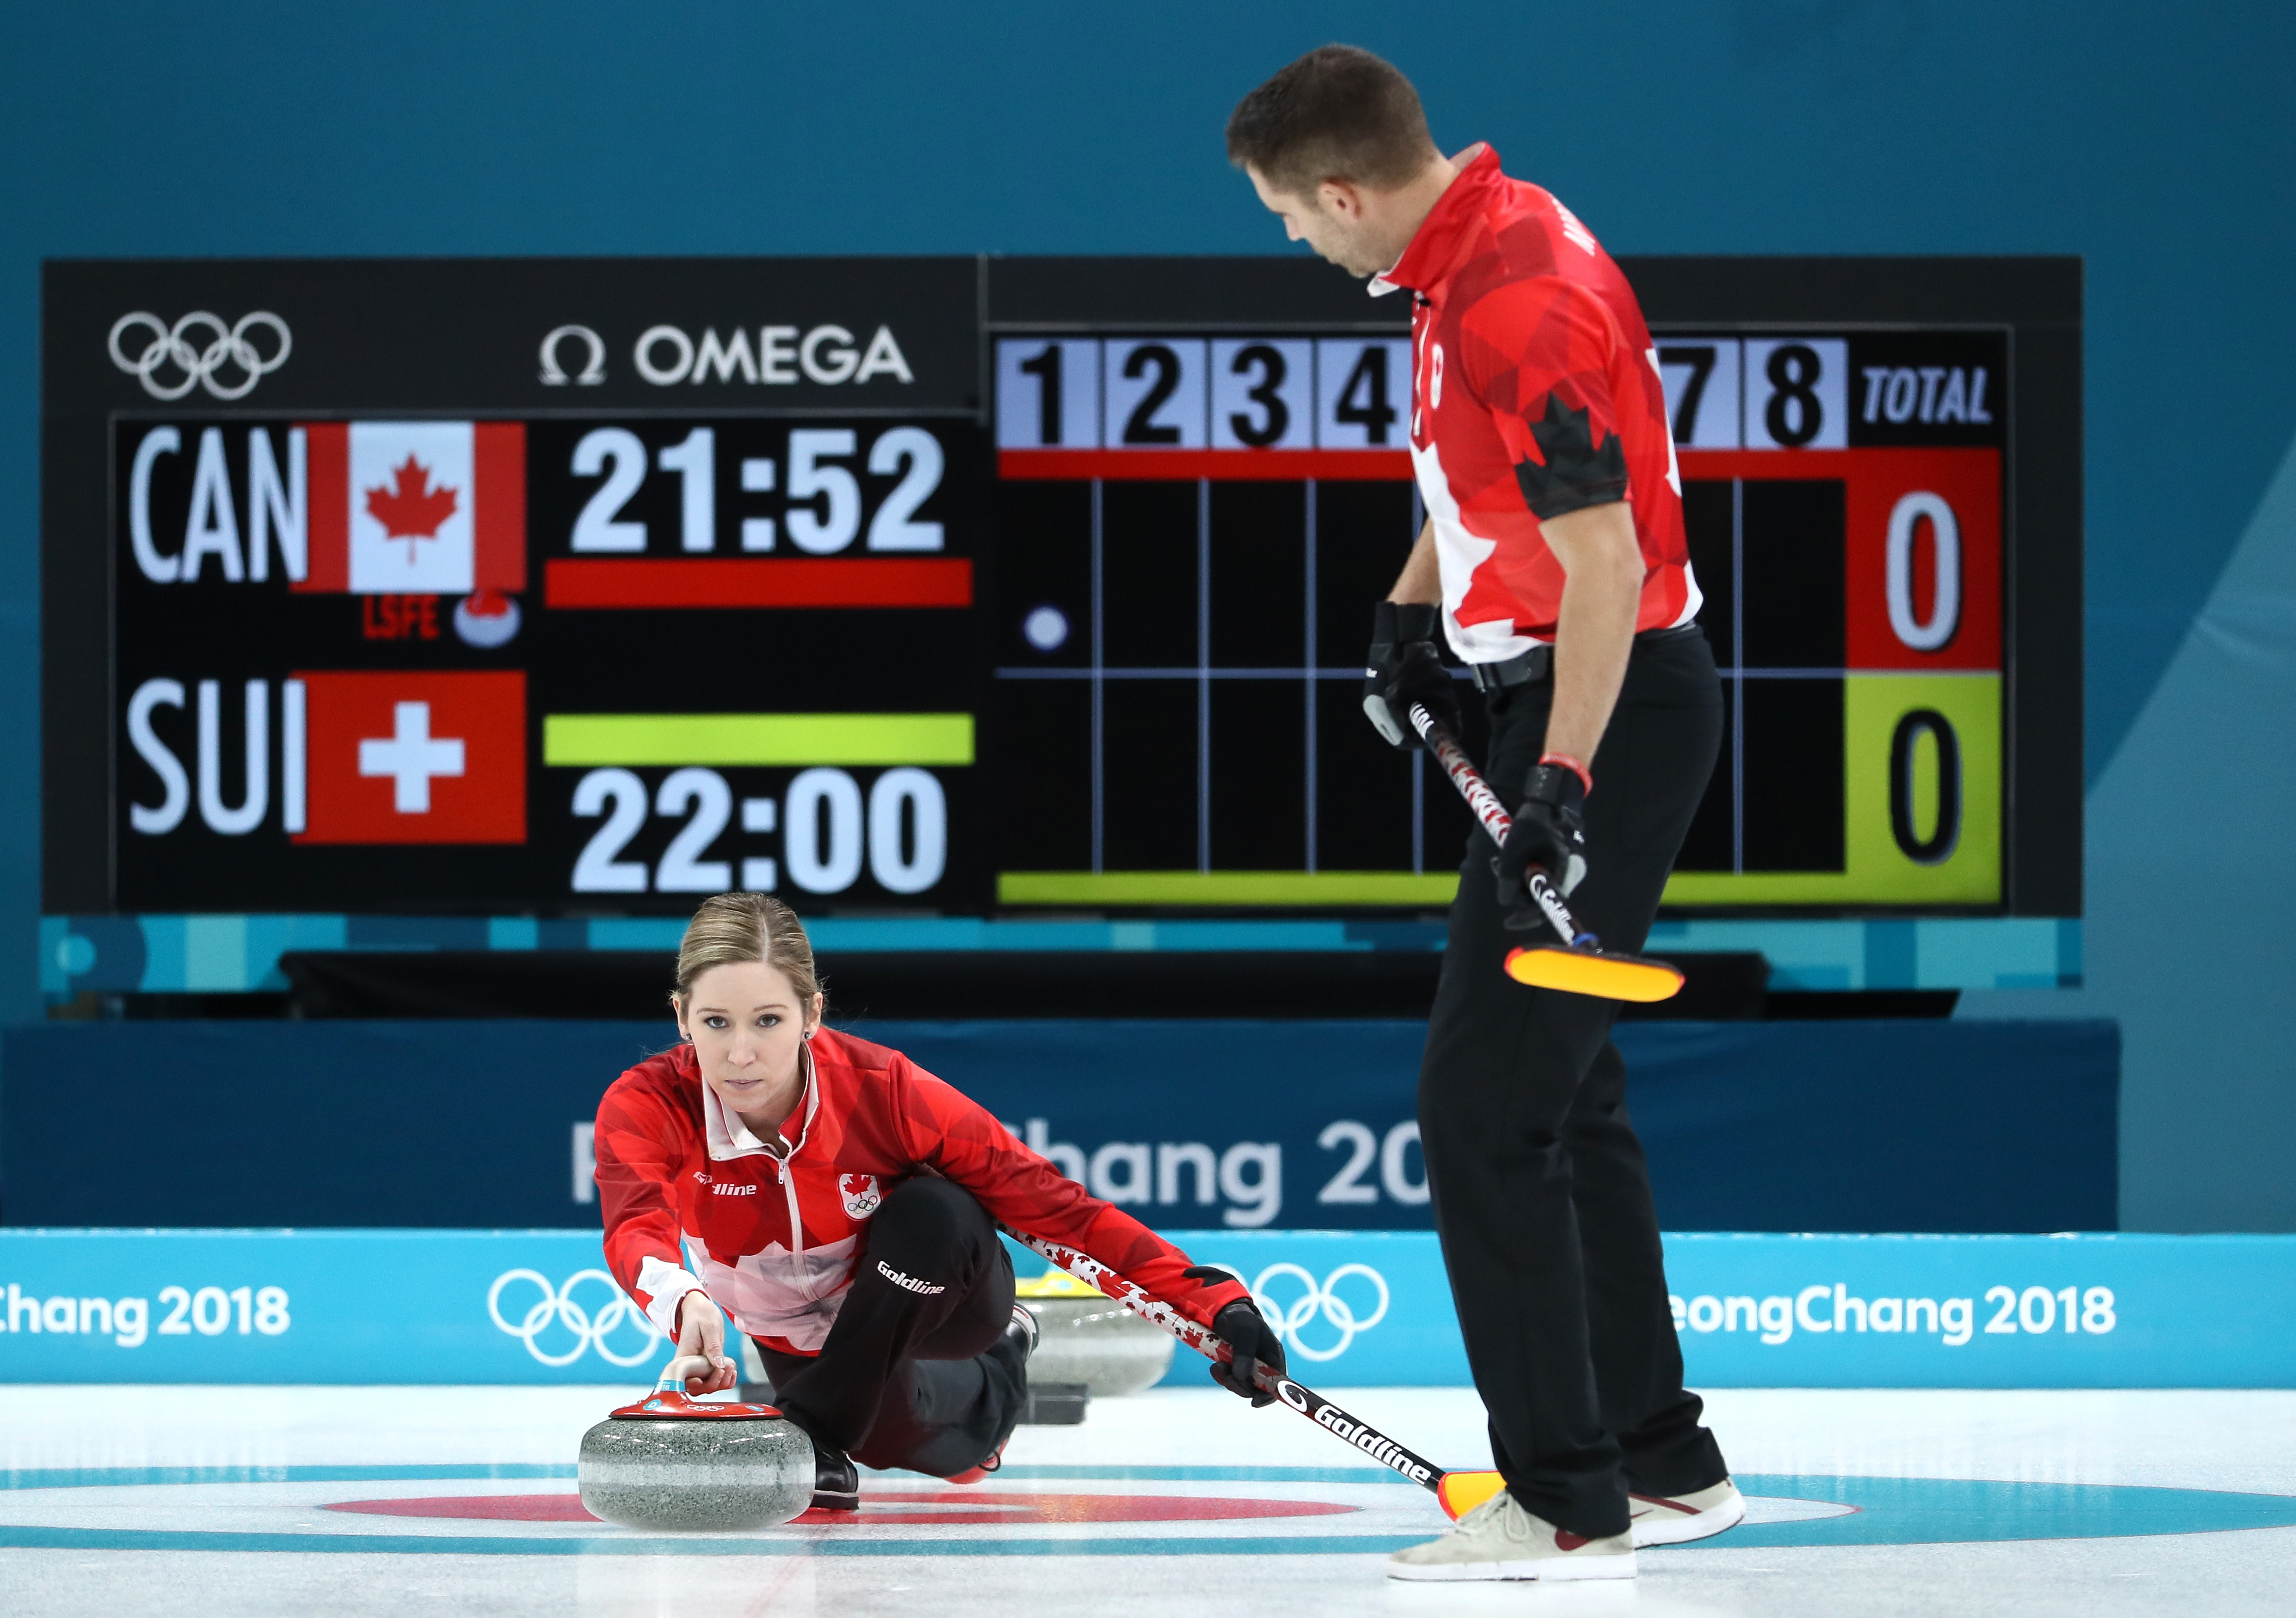 Kaitlyn Lawes and John Morris of Canada deliver a stone against Switzerland during the Curling Mixed Doubles Gold Medal Game in PyeongChang on Feb. 13, 2018. Jamie Squire—Getty Images